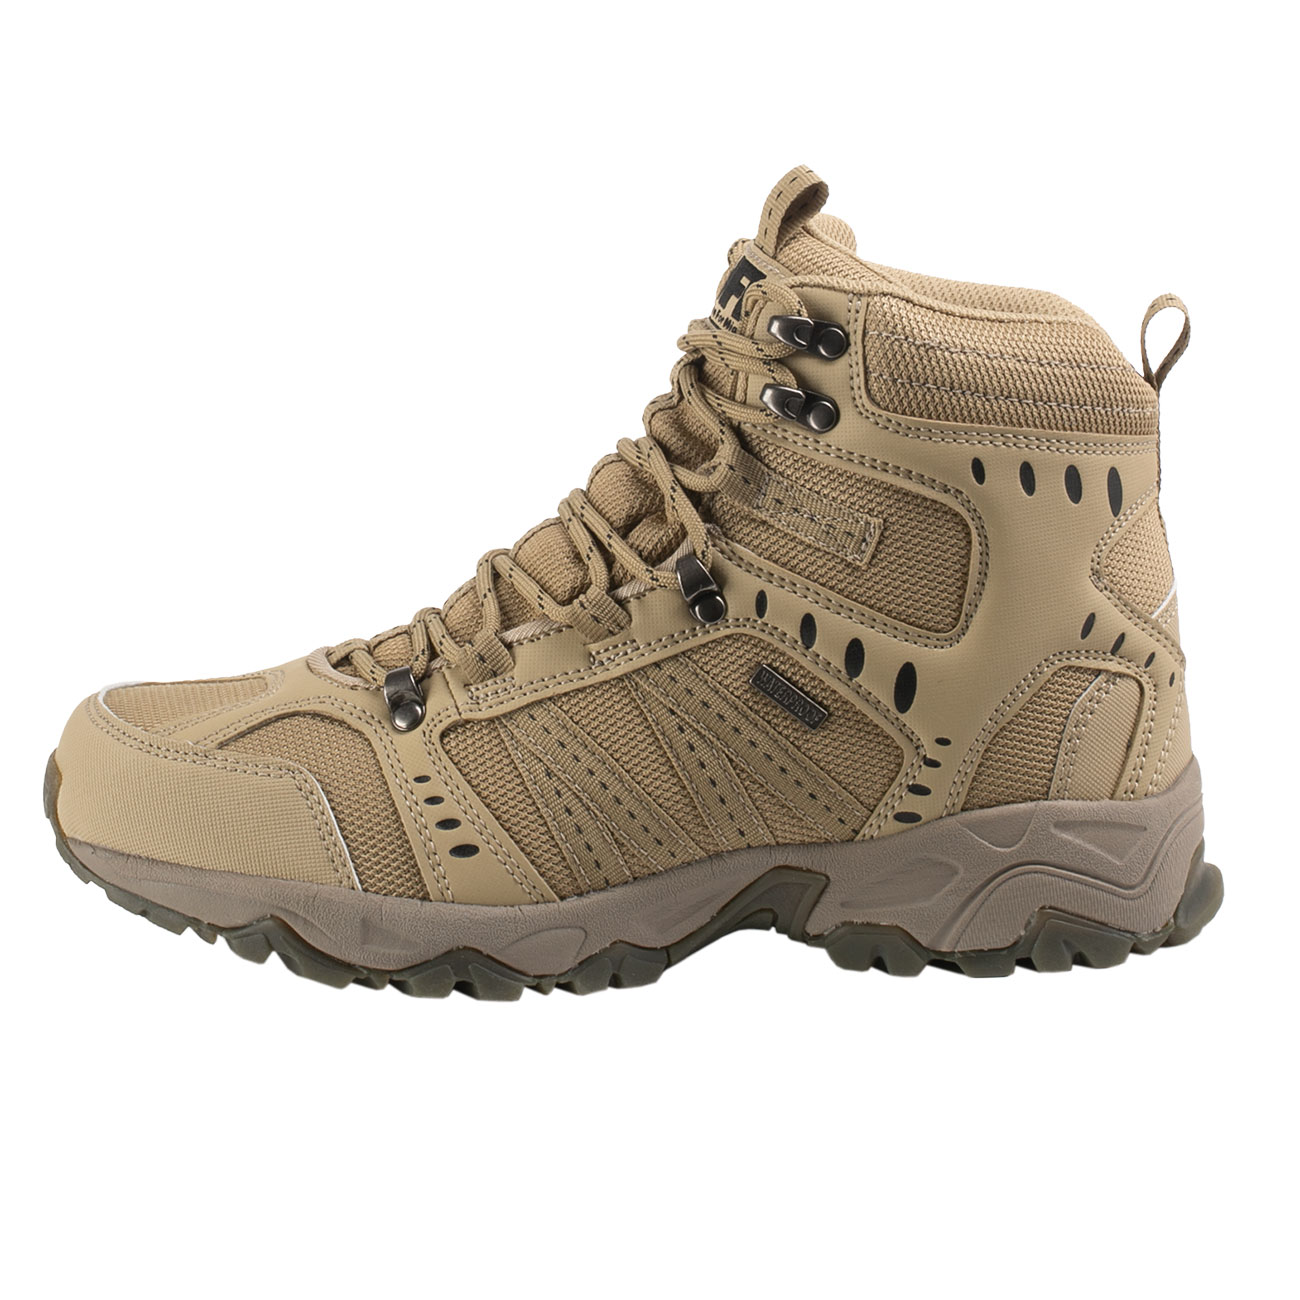 MFH Einsatzstiefel Tactical coyote tan 0